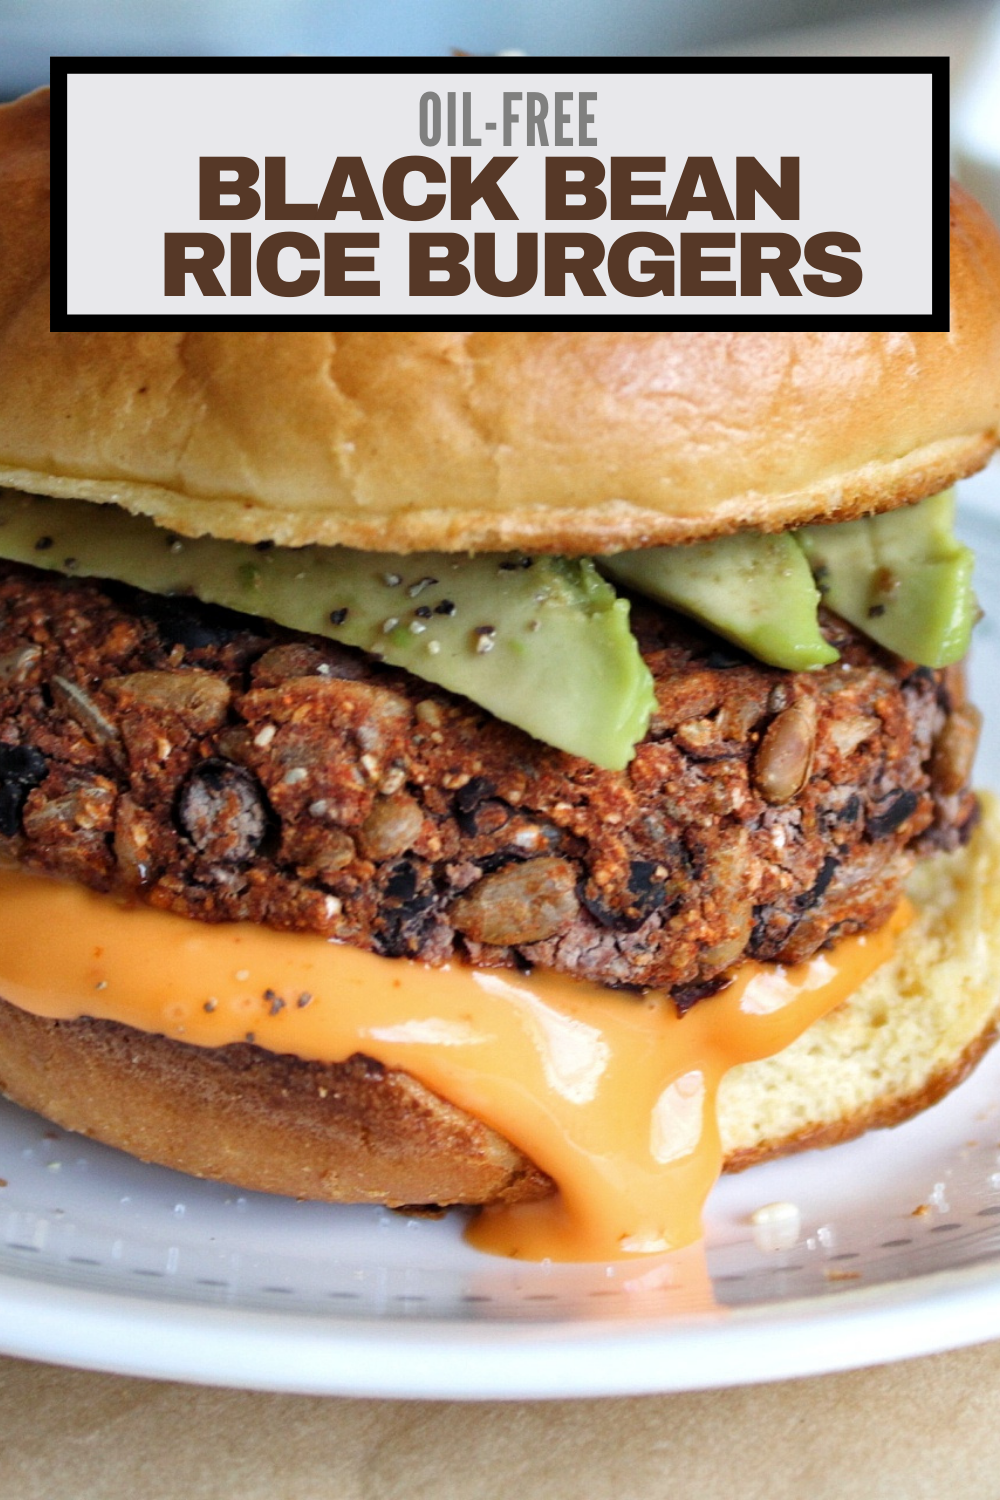 Oil-free black bean rice burgers.